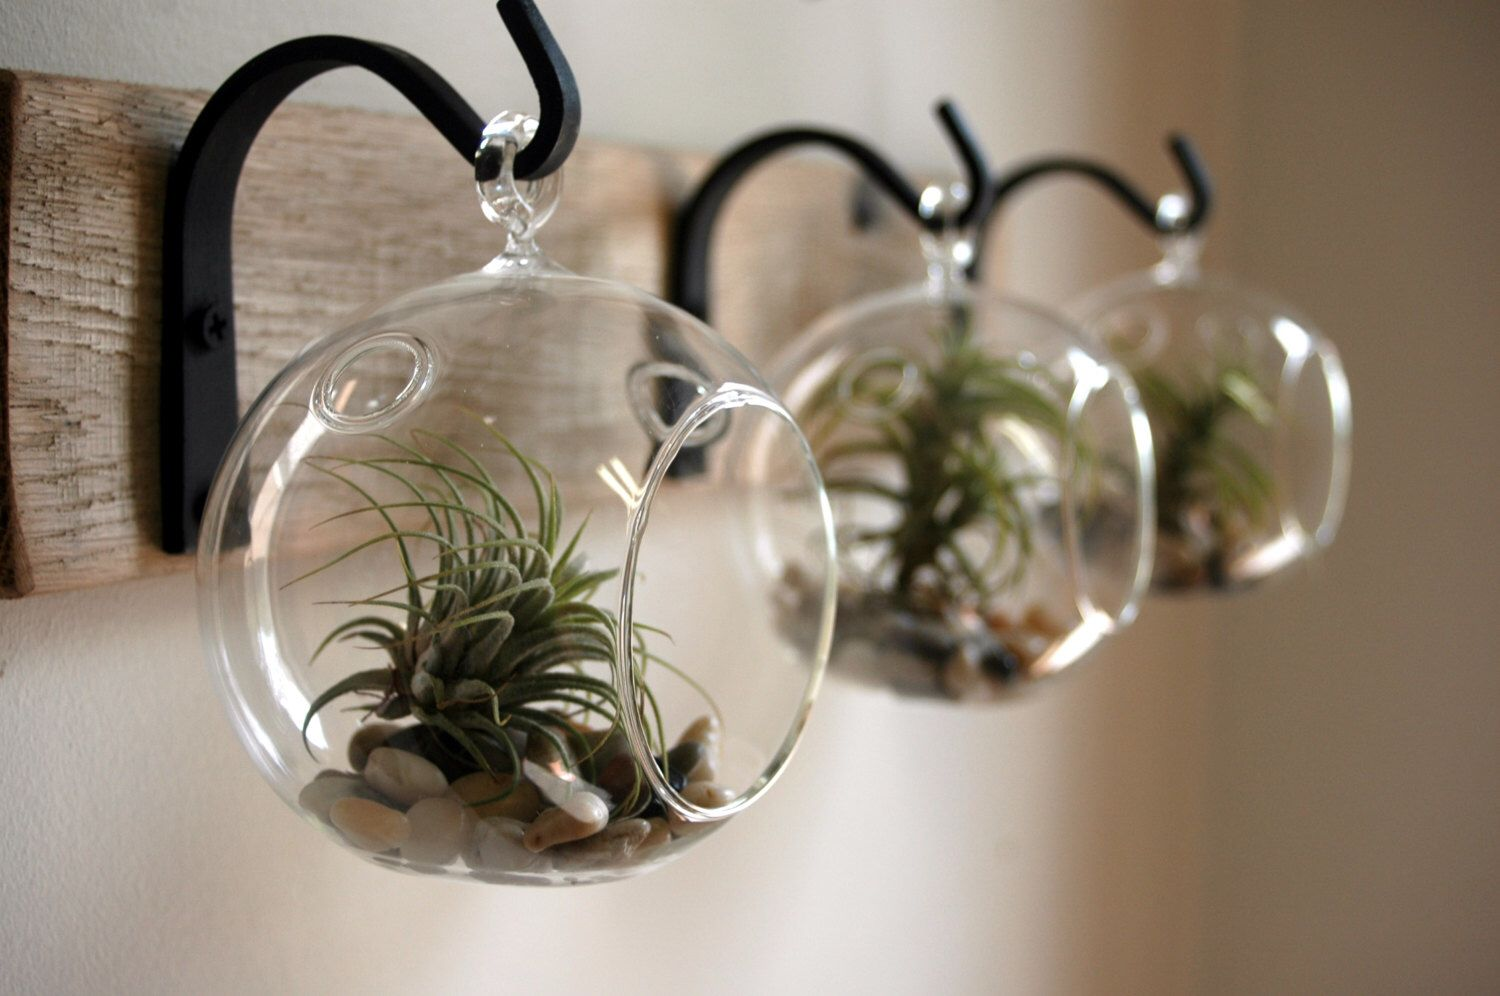 Rustic wall decor, Succulent holder, Farmhouse style decor, Modern Farmhouse, Bedroom decor, glass globe, Air plant vase,Living room decor is part of Plant decor Glass - Unique, rustic Farmhouse décor, perfect for any room! Holds succulents, Air Plants, or artificial flowers  Great for most any style, like Fixer Upper Farmhouse style, Rustic, Shabby Chic, etc  The board is 18 inches long and approximately 3 5 inches high  Glass globes are 4 inches wide  Available in 6 rich stain colors  See photo 5 for all available colors  Ready to hang securely to your wall with keyhole hangers on the back of the board